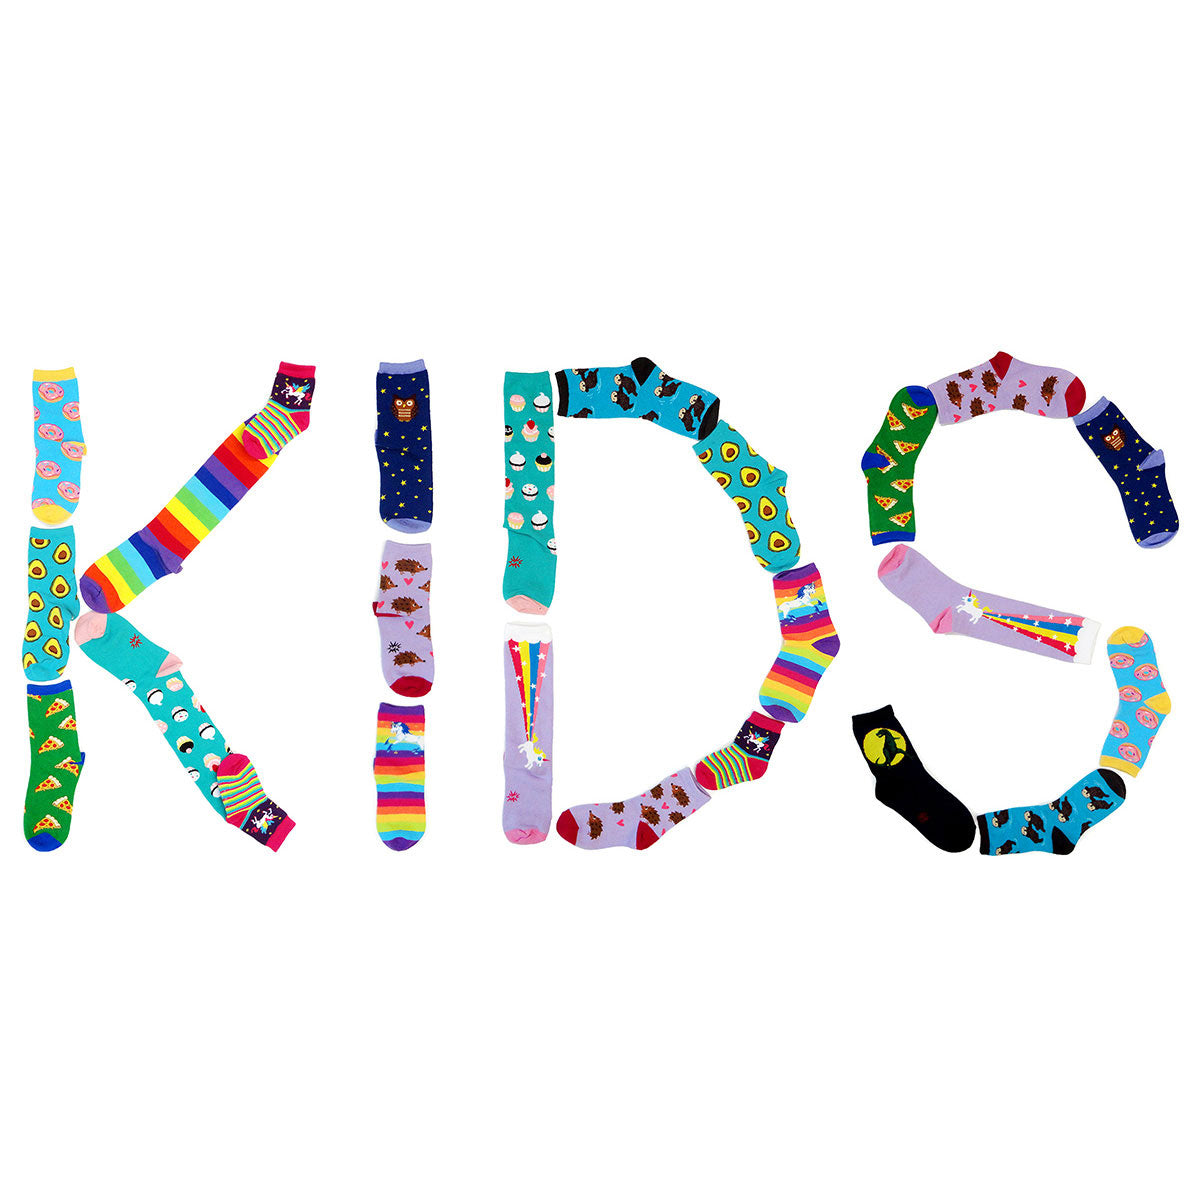 "Cute socks with animals, food and rainbow stripes from our Kids' Socks collection spell out the word ""KIDS."""